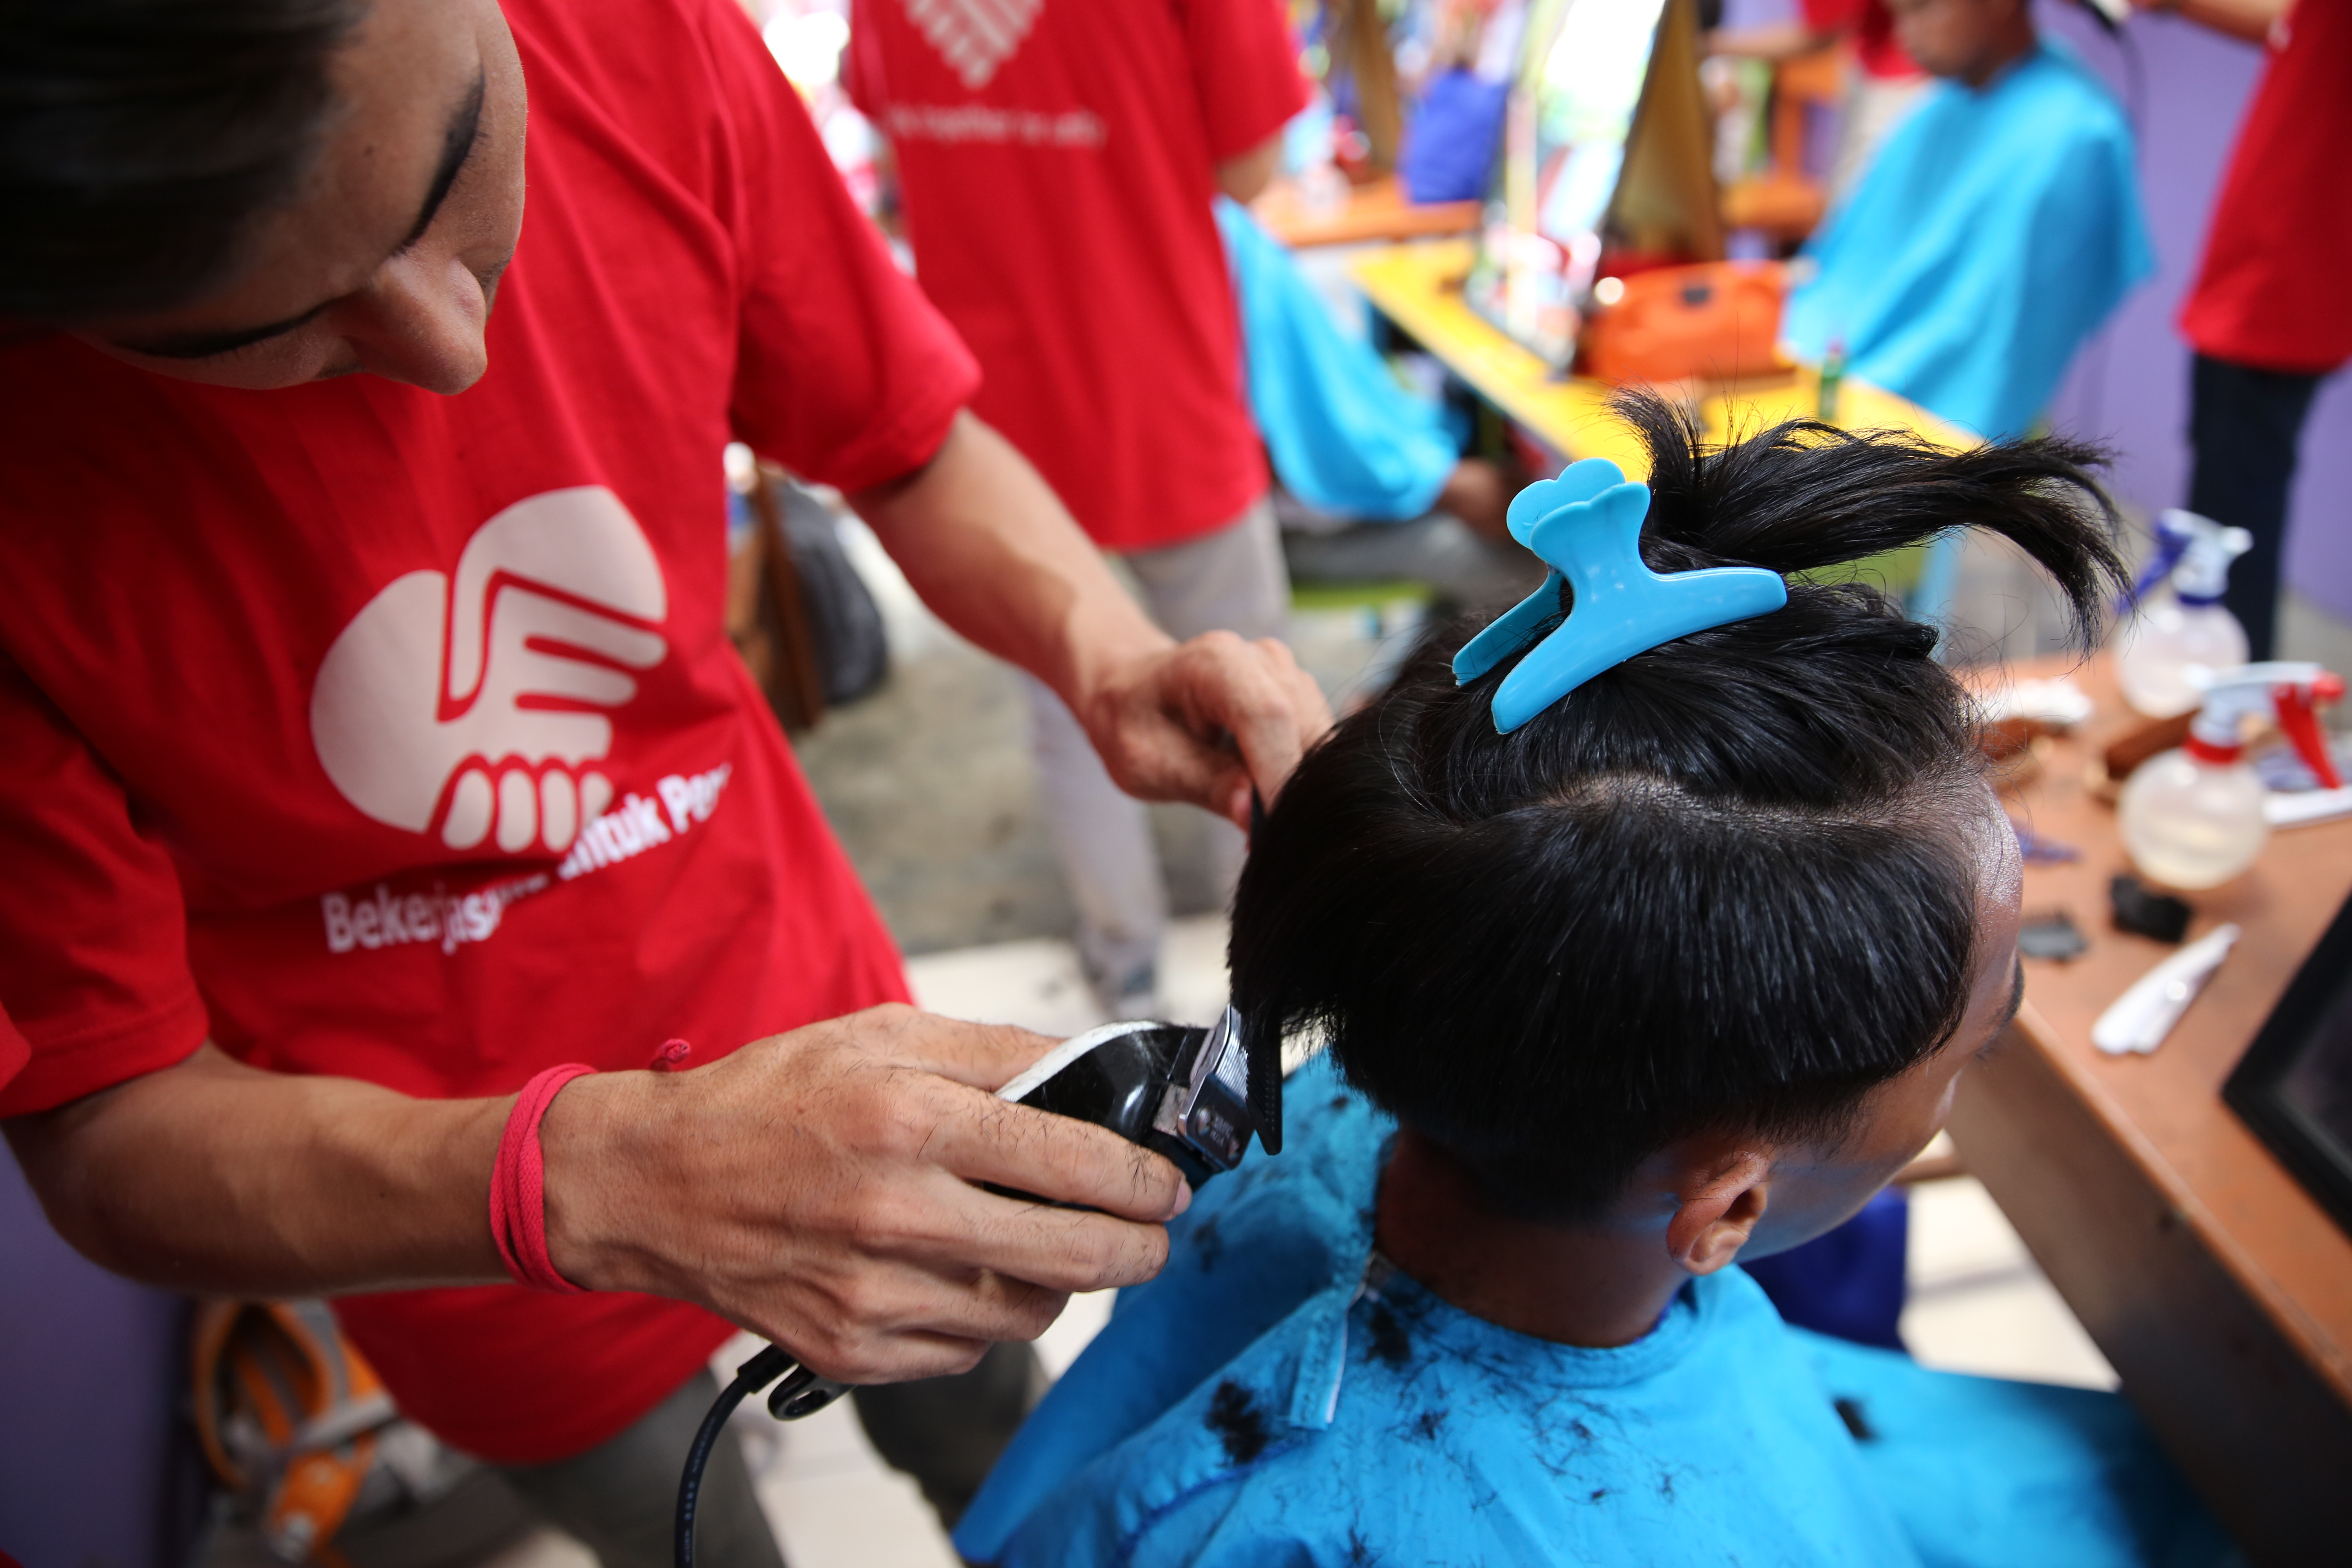 """Refugees from five nations living in Medan, Indonesia with IOM's assistance provided 20 street children and dozens of local residents a special """"spa day"""" treatment prior to the Idul Adha holiday weekend. Fourteen young Afghan, Iraqi, Iranian, Palestinian and Sudanese men who graduated from a three-month hair stylist vocational training program organized by IOM have been volunteering their talents at orphanages and other facilities since mid-2017."""